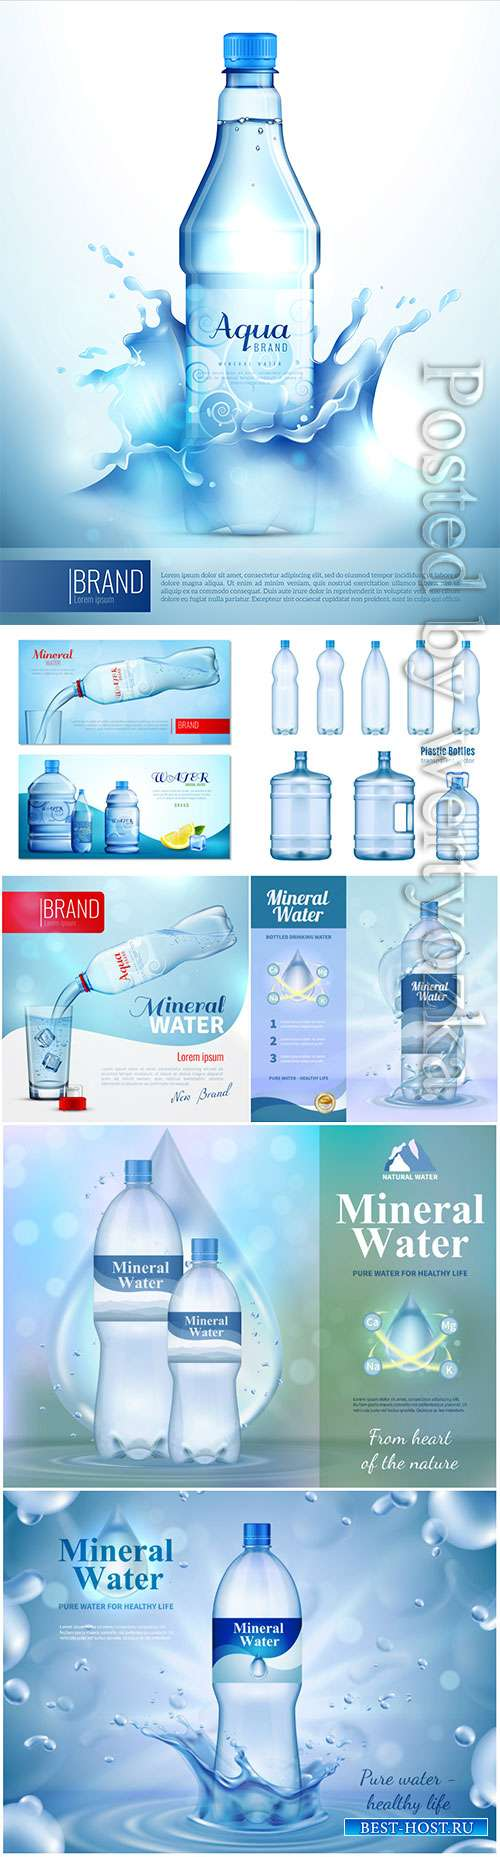 Water bottle ad banner, flask with drink, splashing water drops in vector